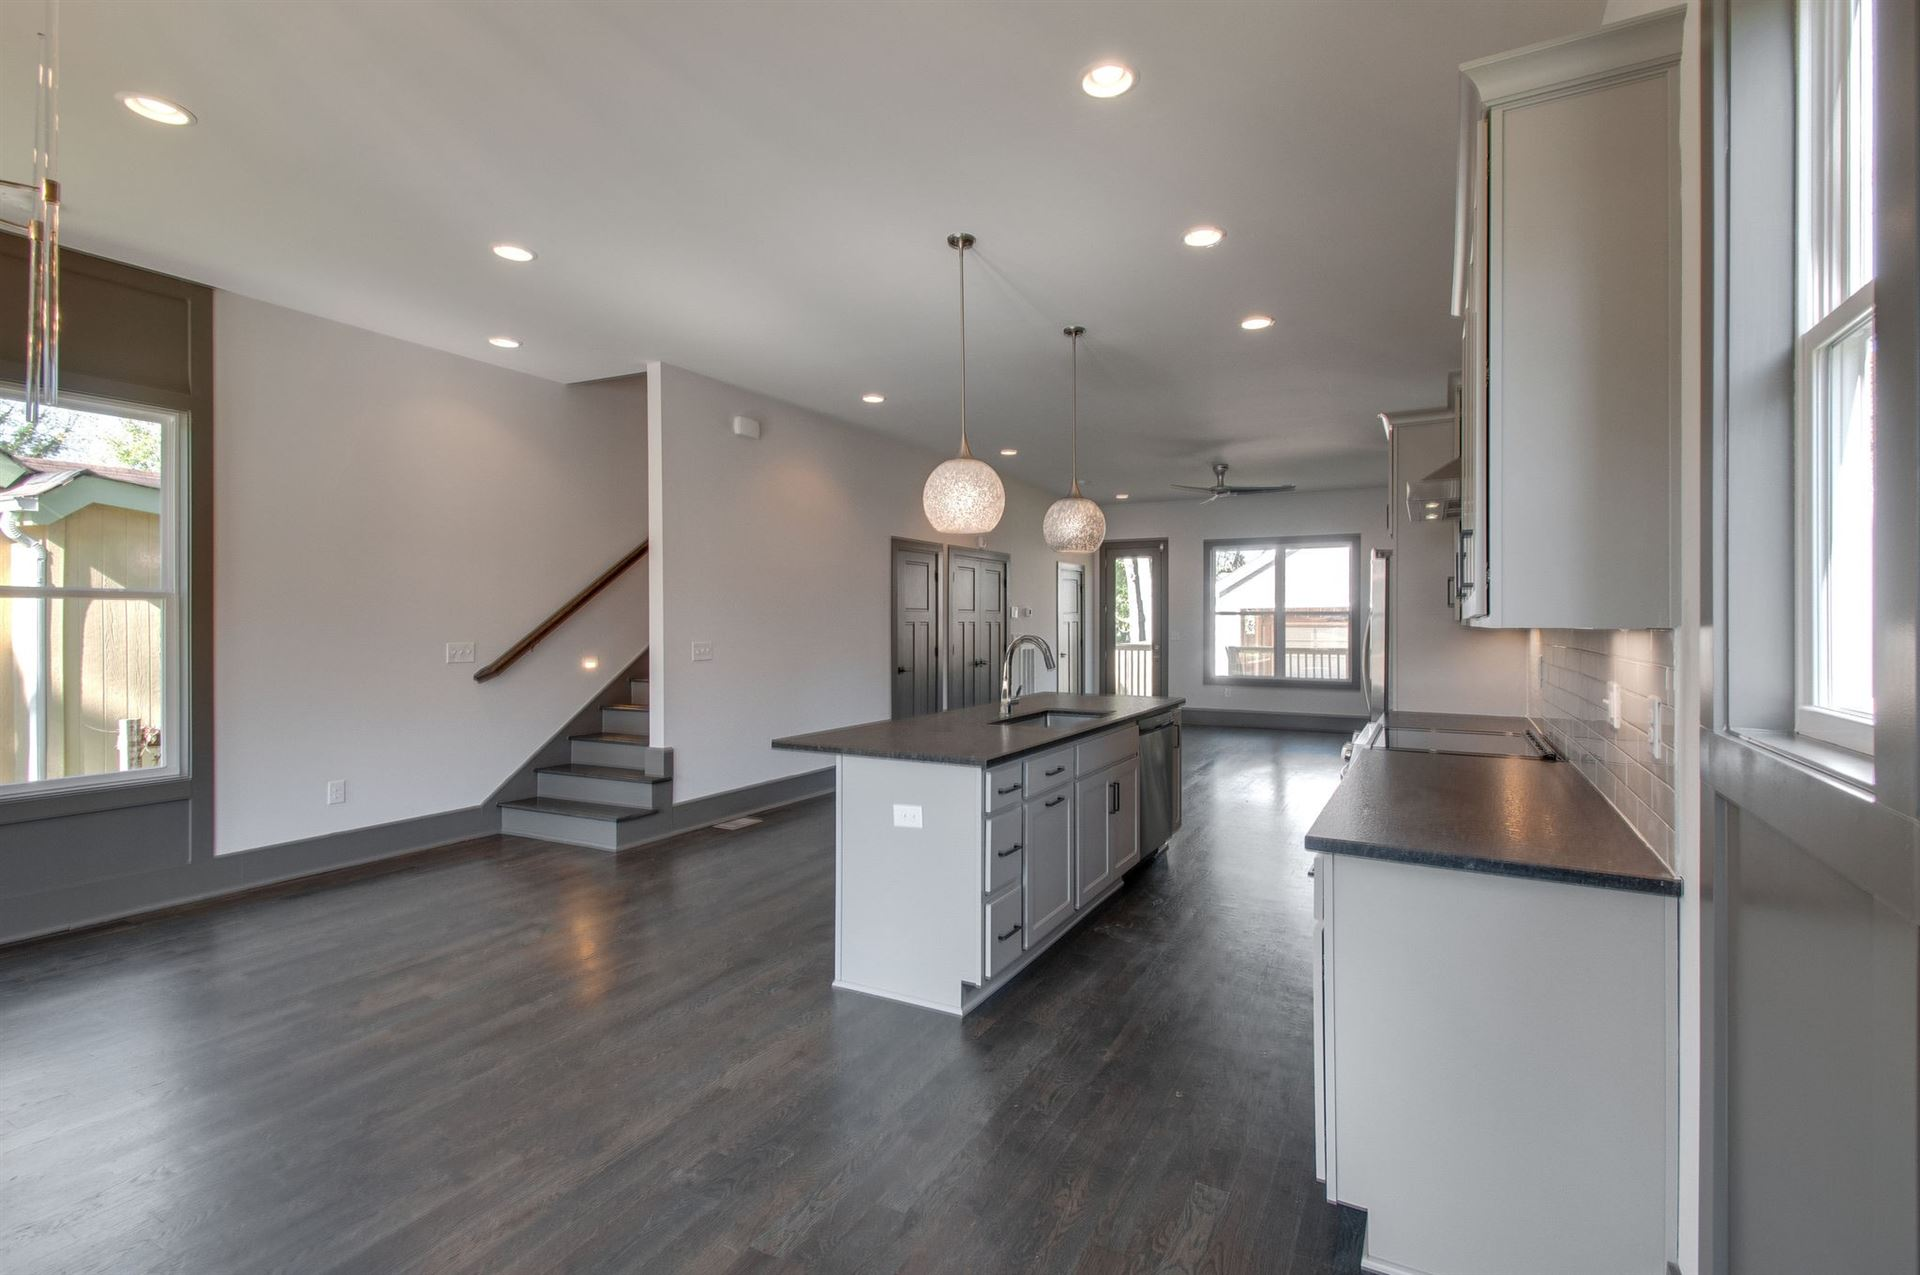 Property Image Of 1826 Knowles St In Nashville, Tn